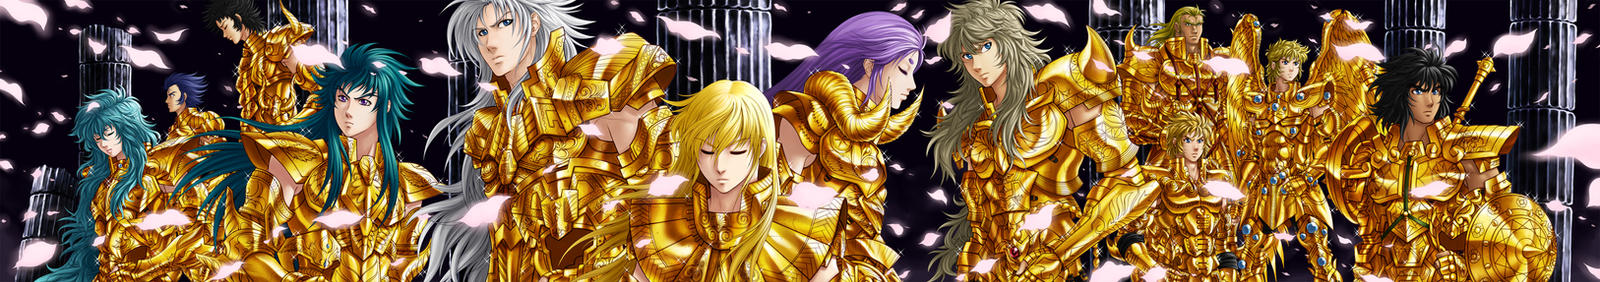 Gold Saints by RXGDO